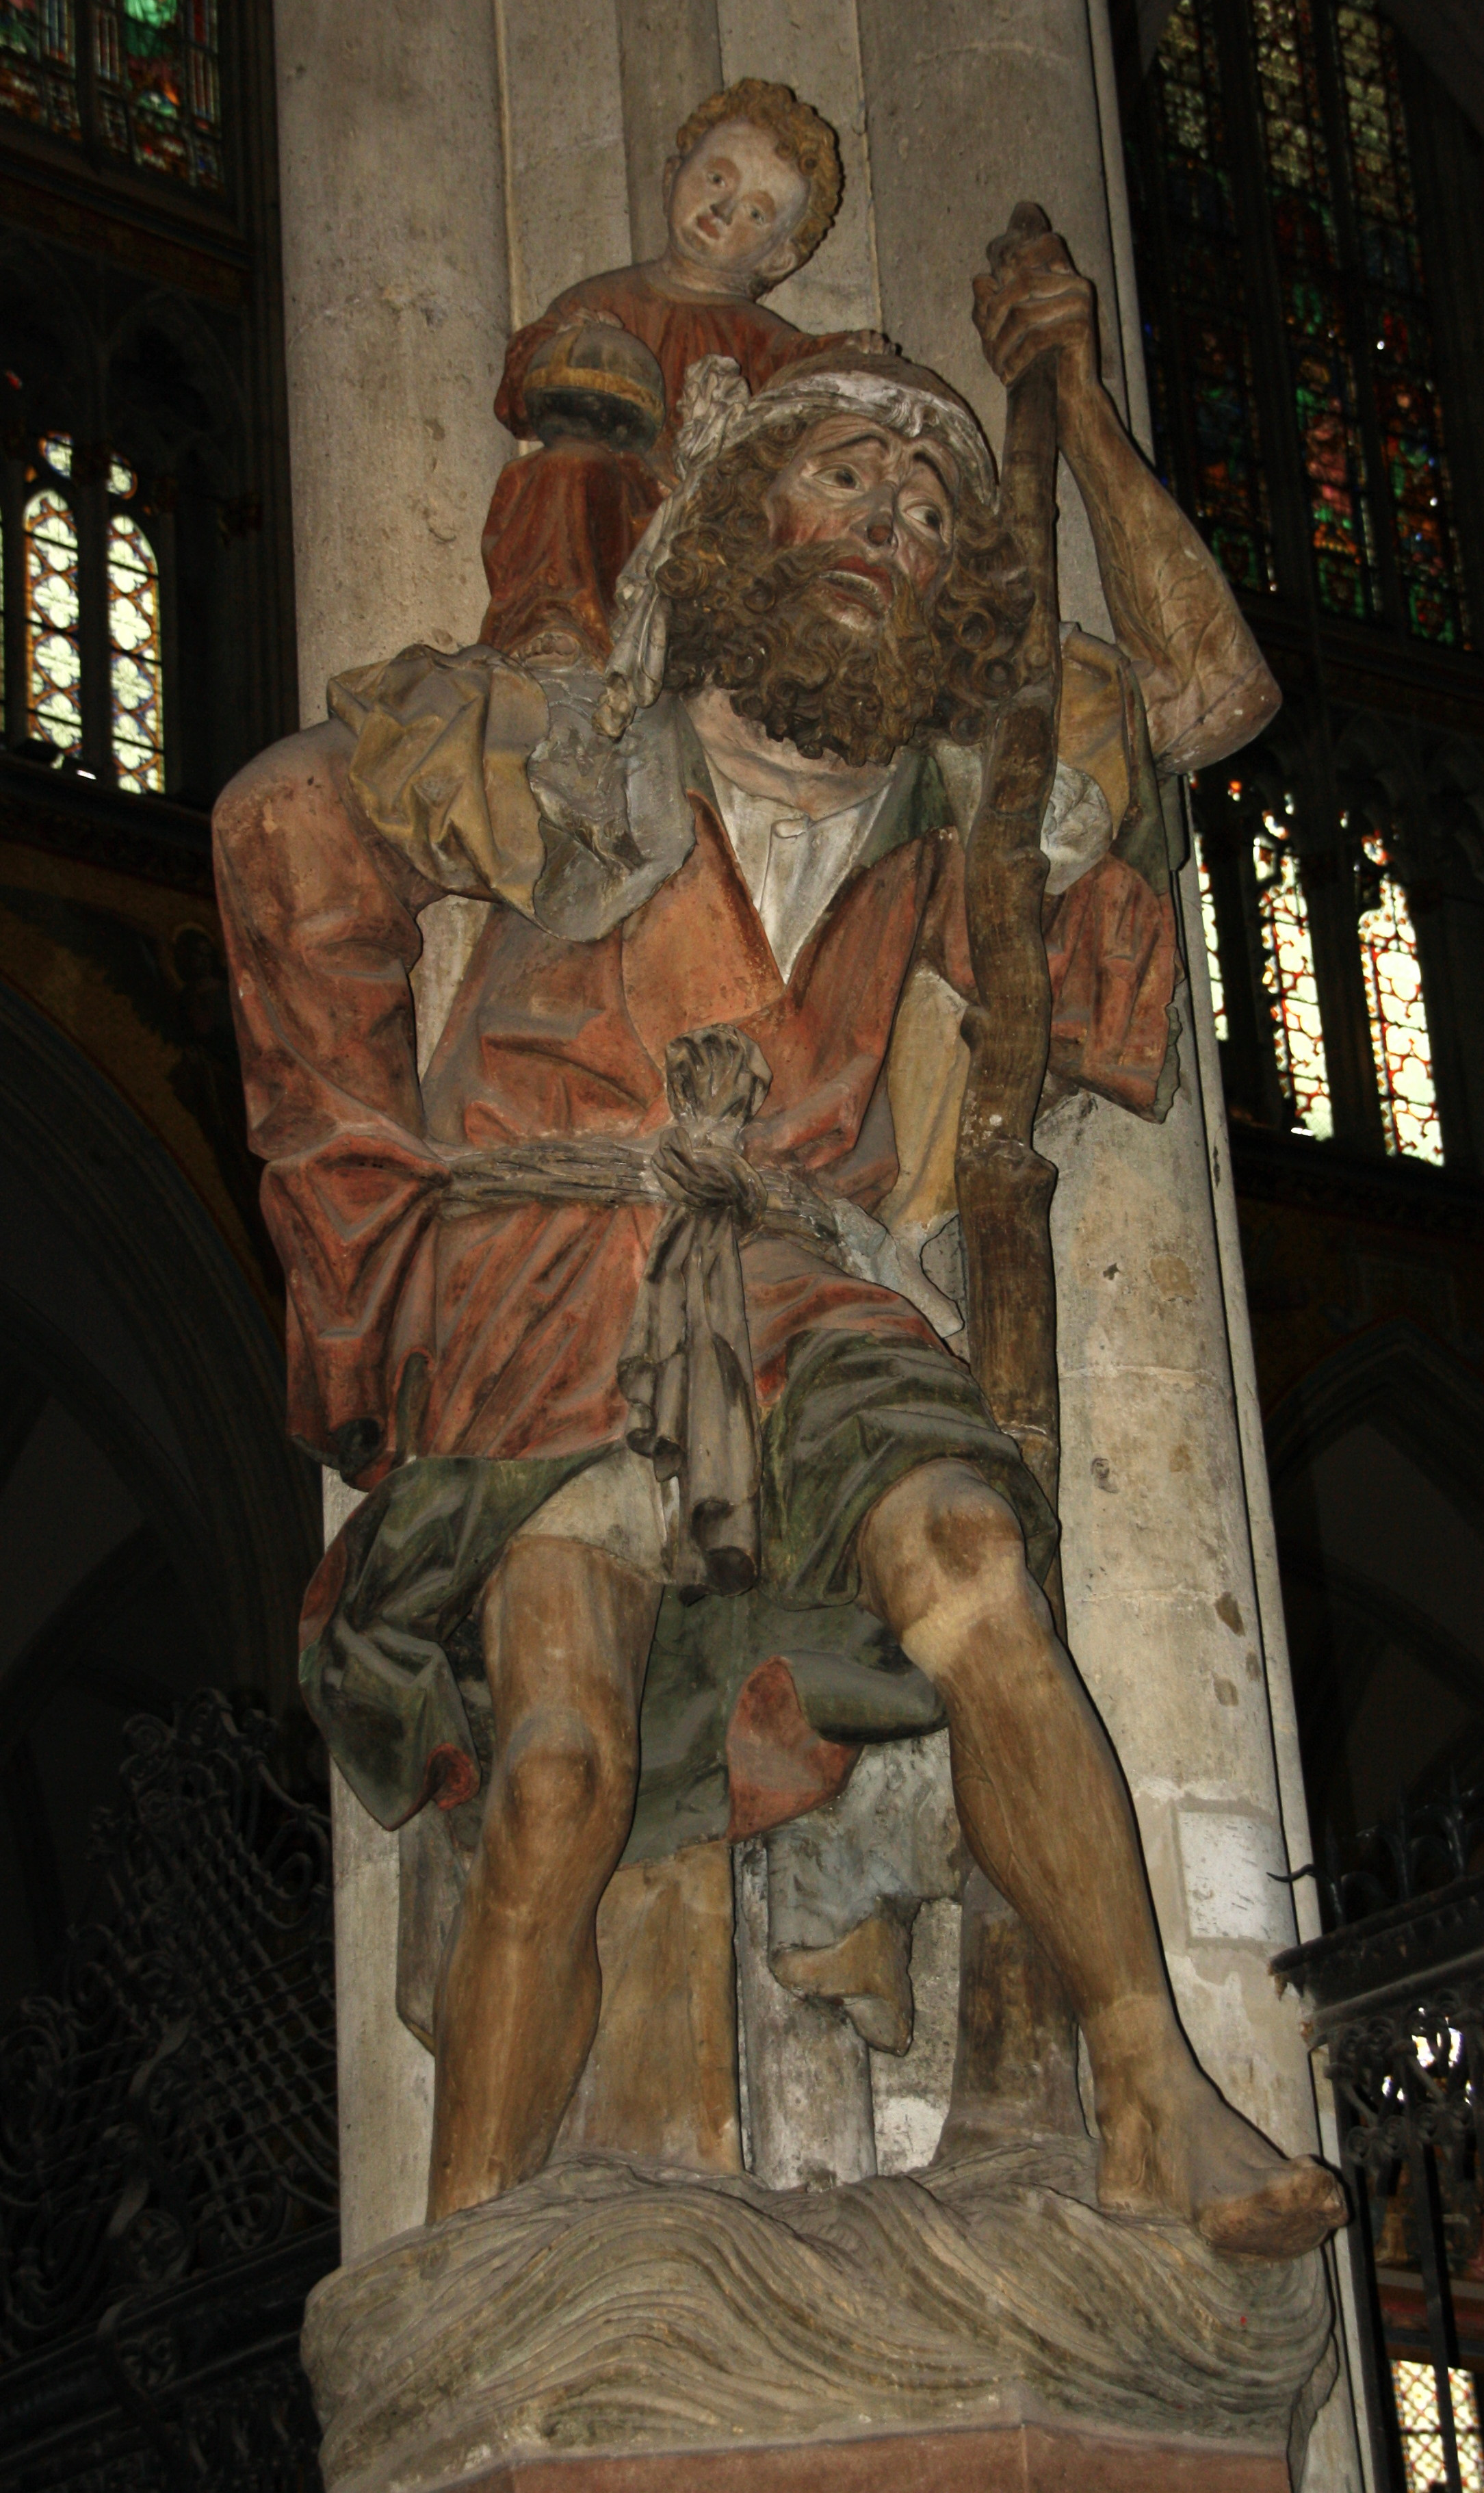 statue de Saint Christophe (vers 1470) Cathédrale de Cologne. Photo : P. Brillon